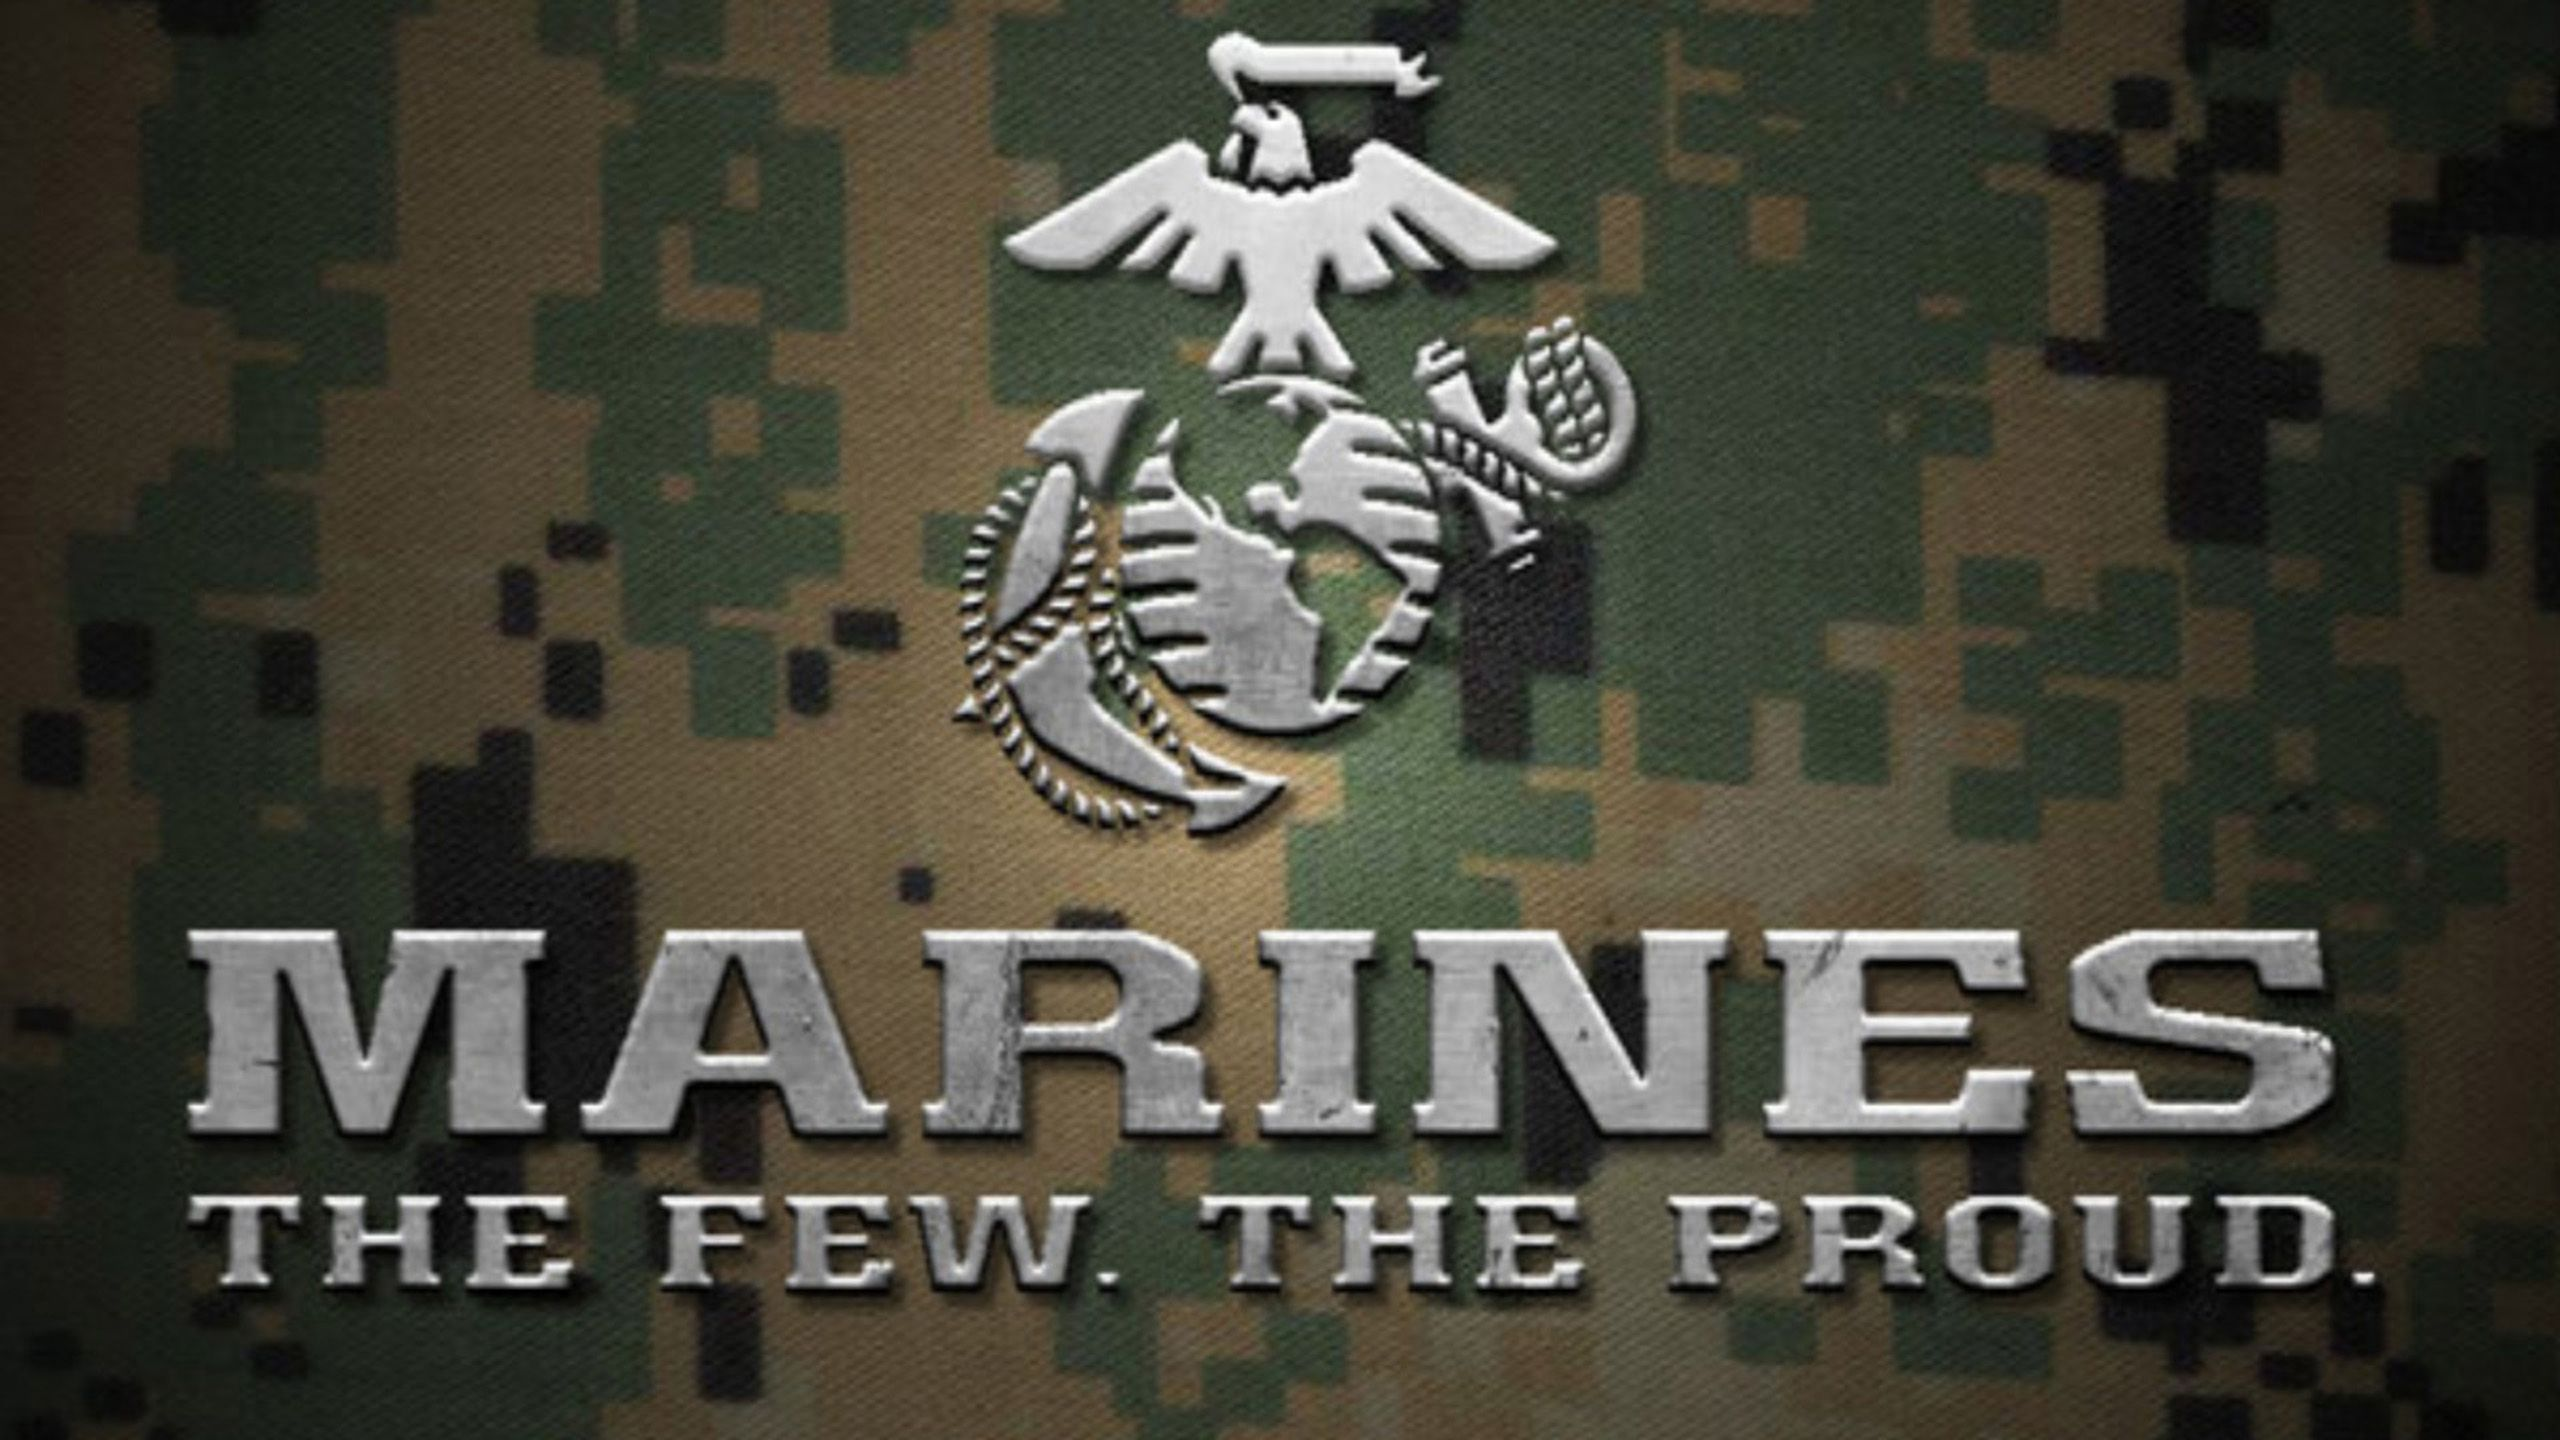 Marines Wallpapers Top Free Marines Backgrounds